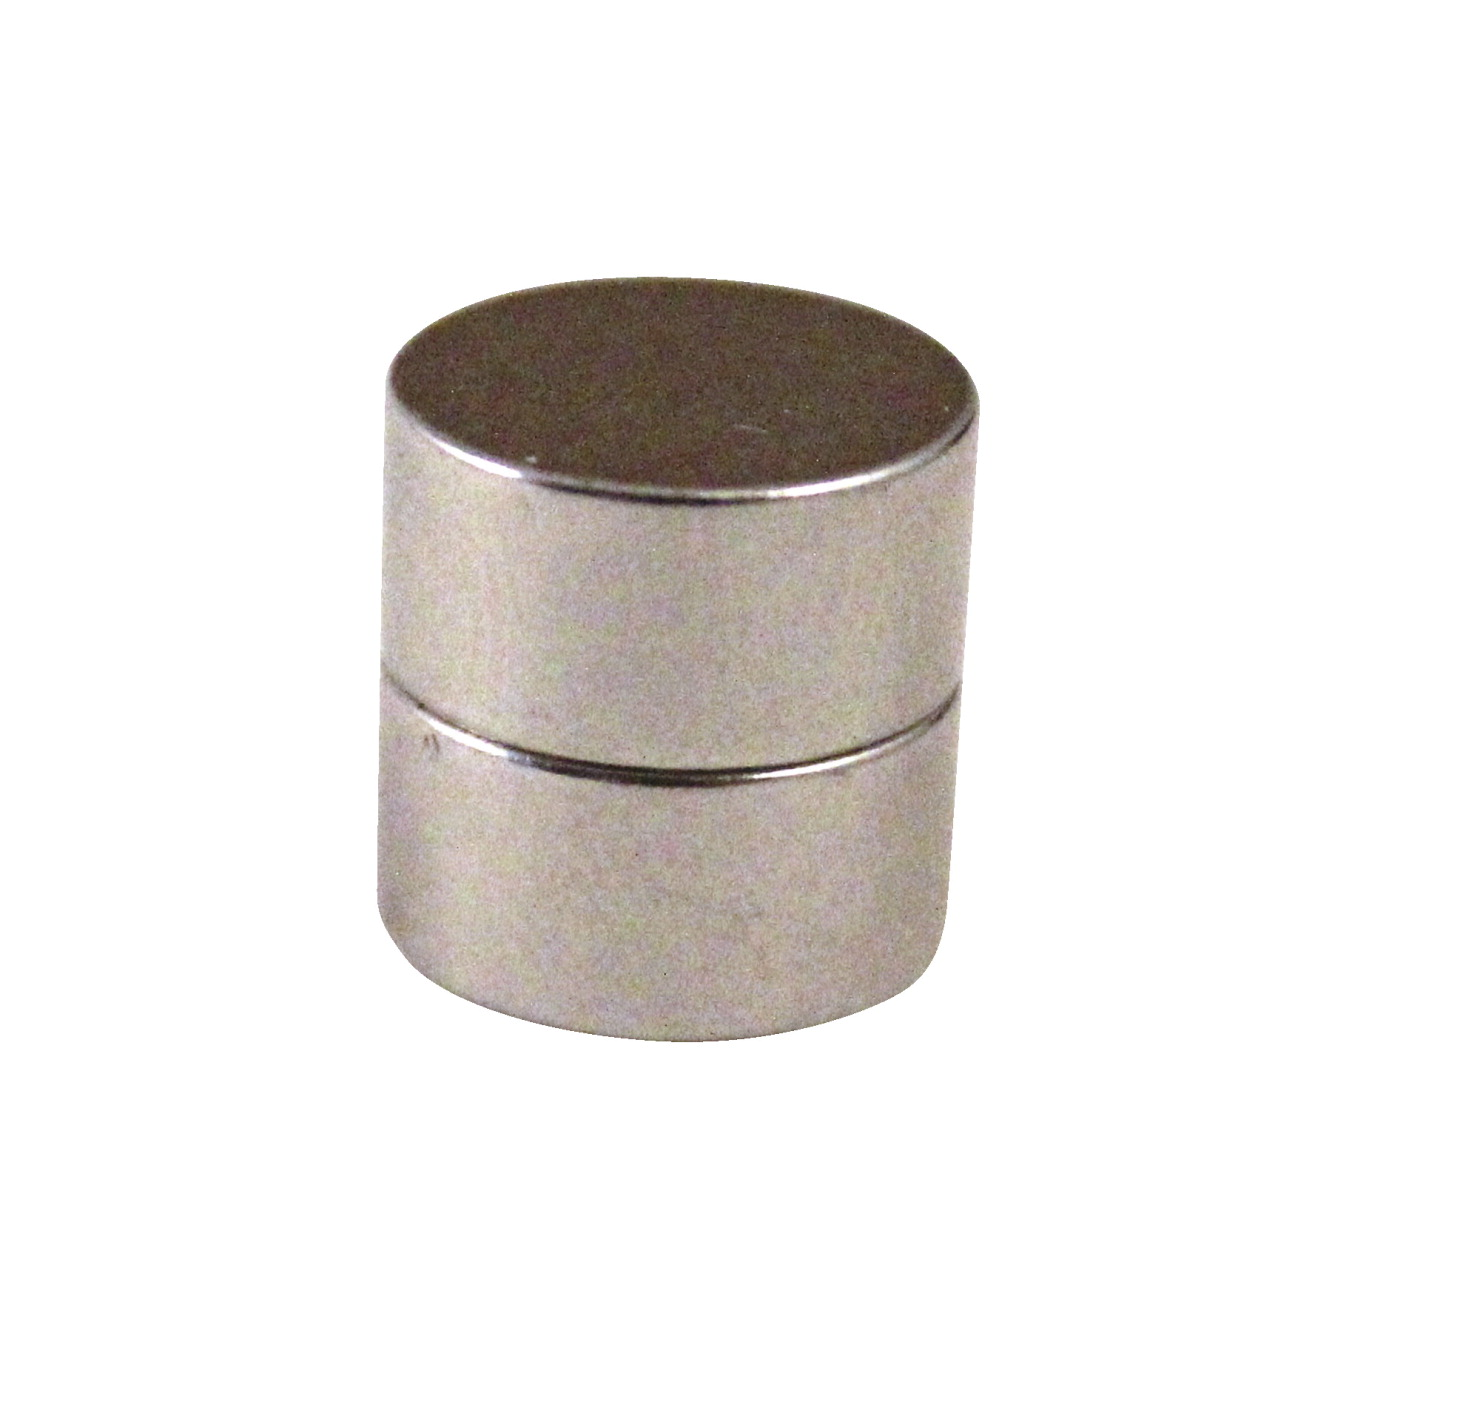 Frey Scientific Neodymium Magnet Pair, 14 mm OD X 6 mm T, Set of 2